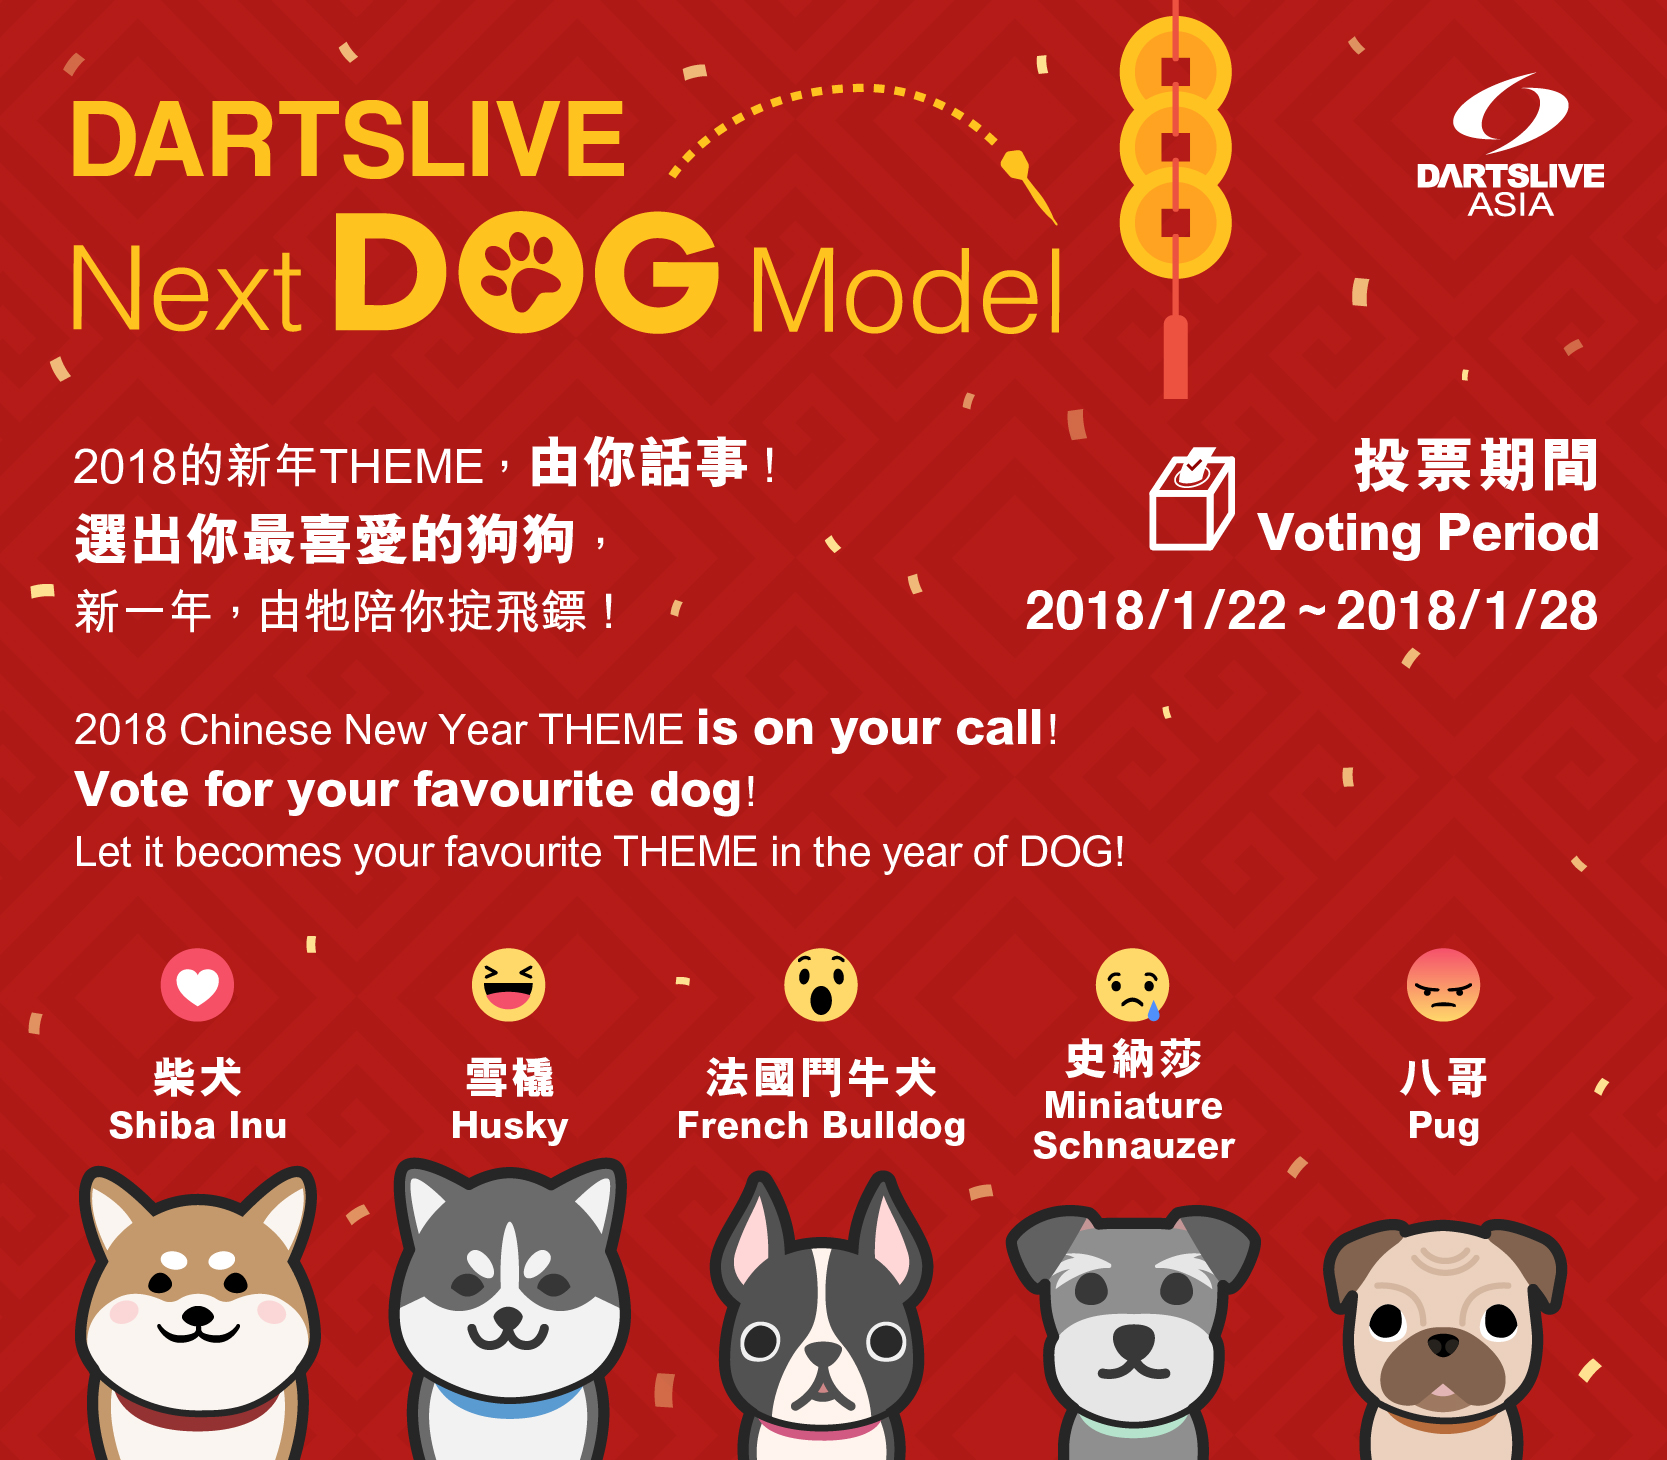 chinese new year 2018 dartslive next dog model campaign dartslive indonesia dartslive